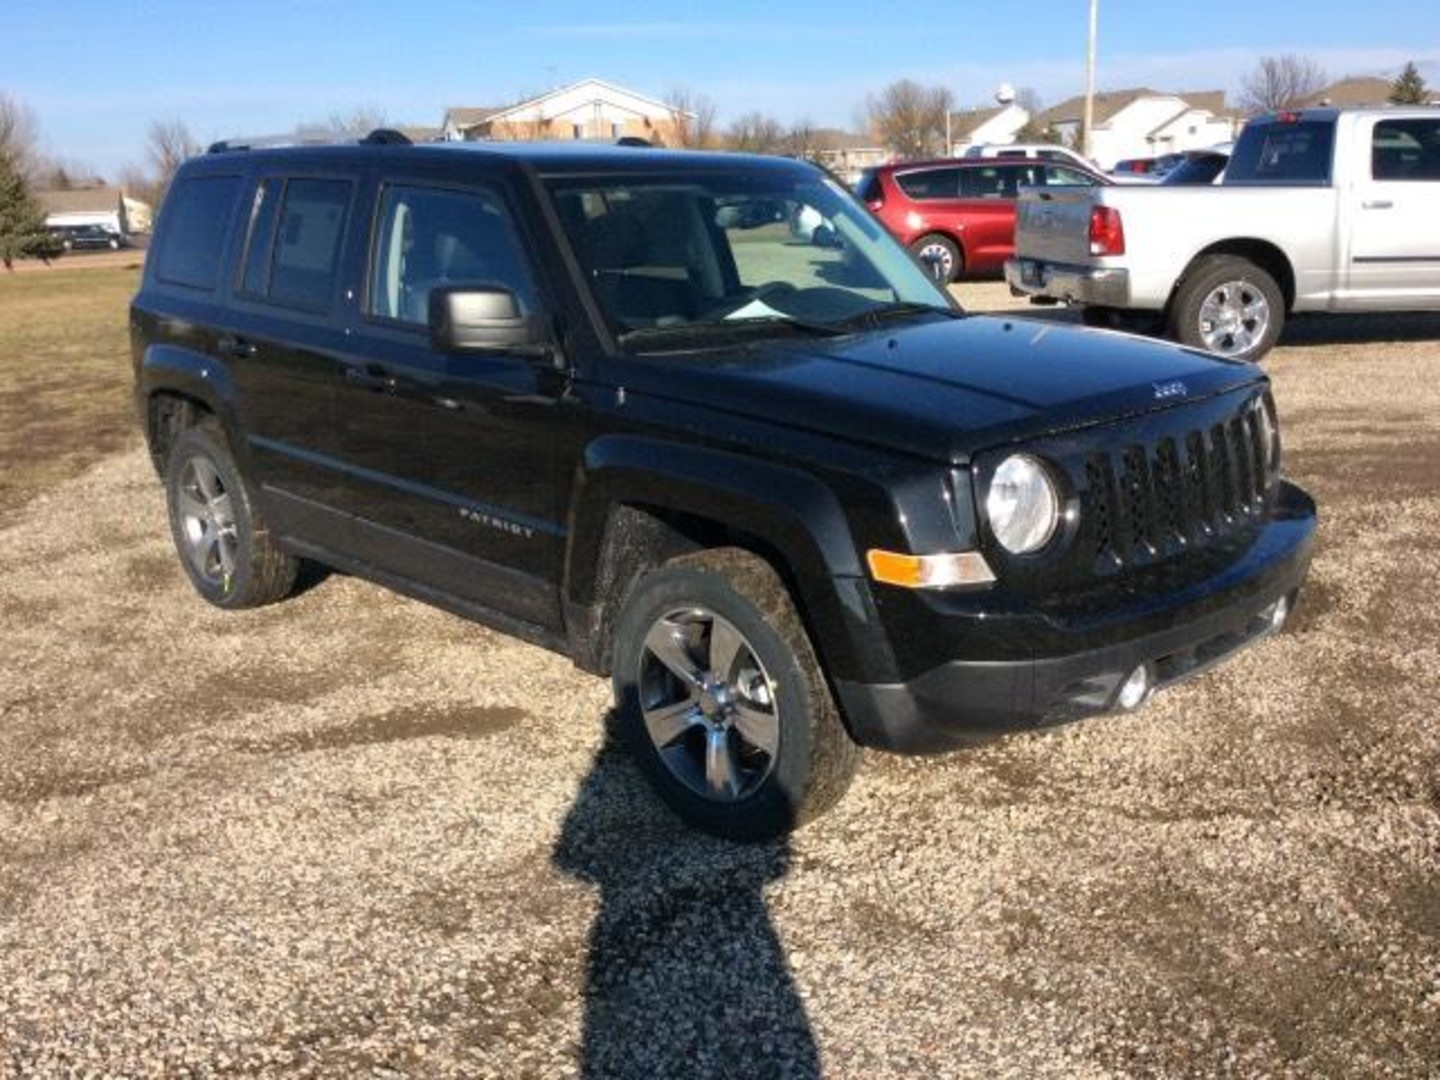 2017 jeep patriot recalls and problems - HD 1440×1080